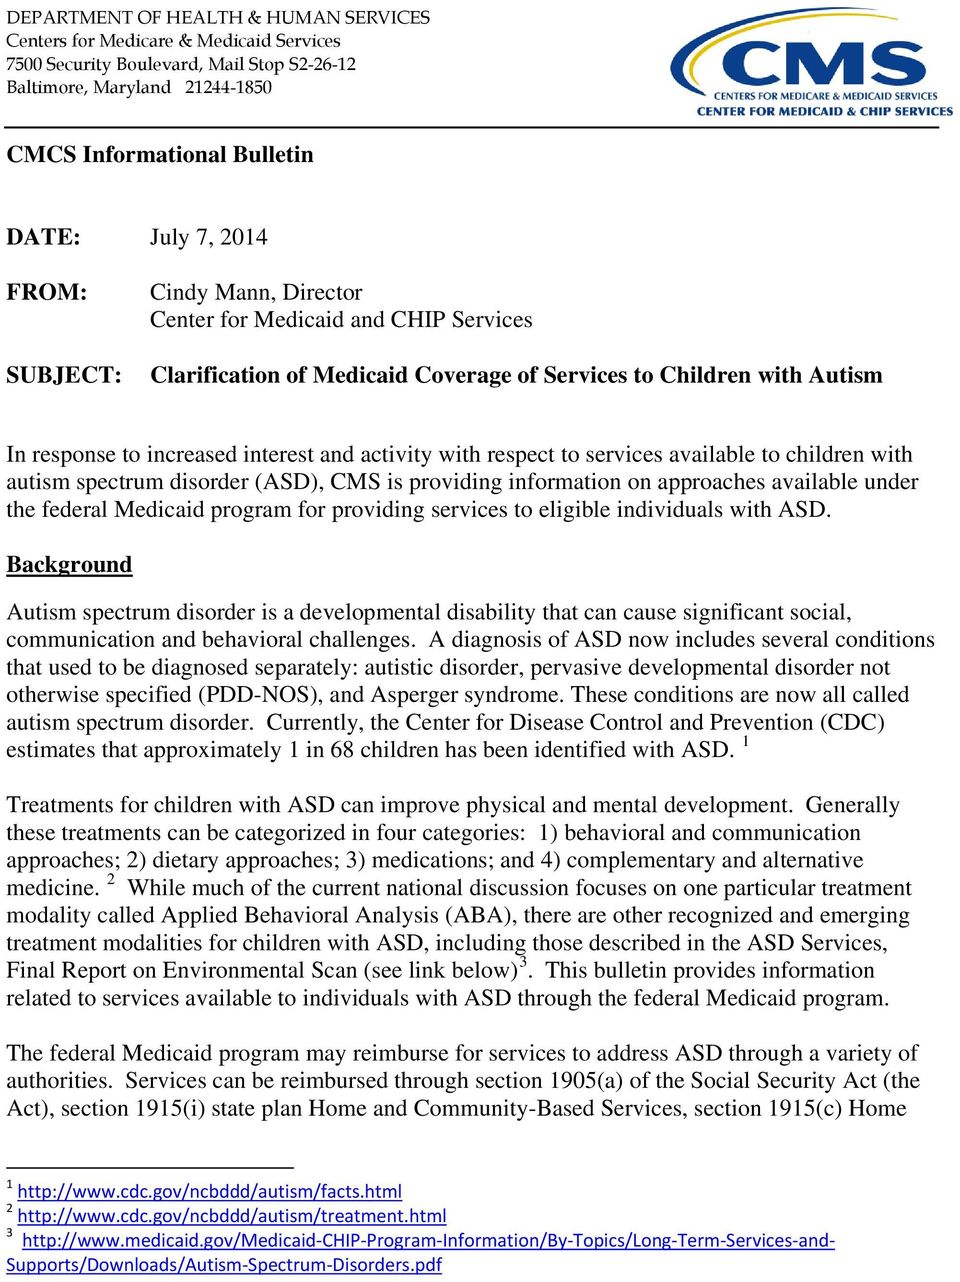 with respect to services available to children with autism spectrum disorder (ASD), CMS is providing information on approaches available under the federal Medicaid program for providing services to